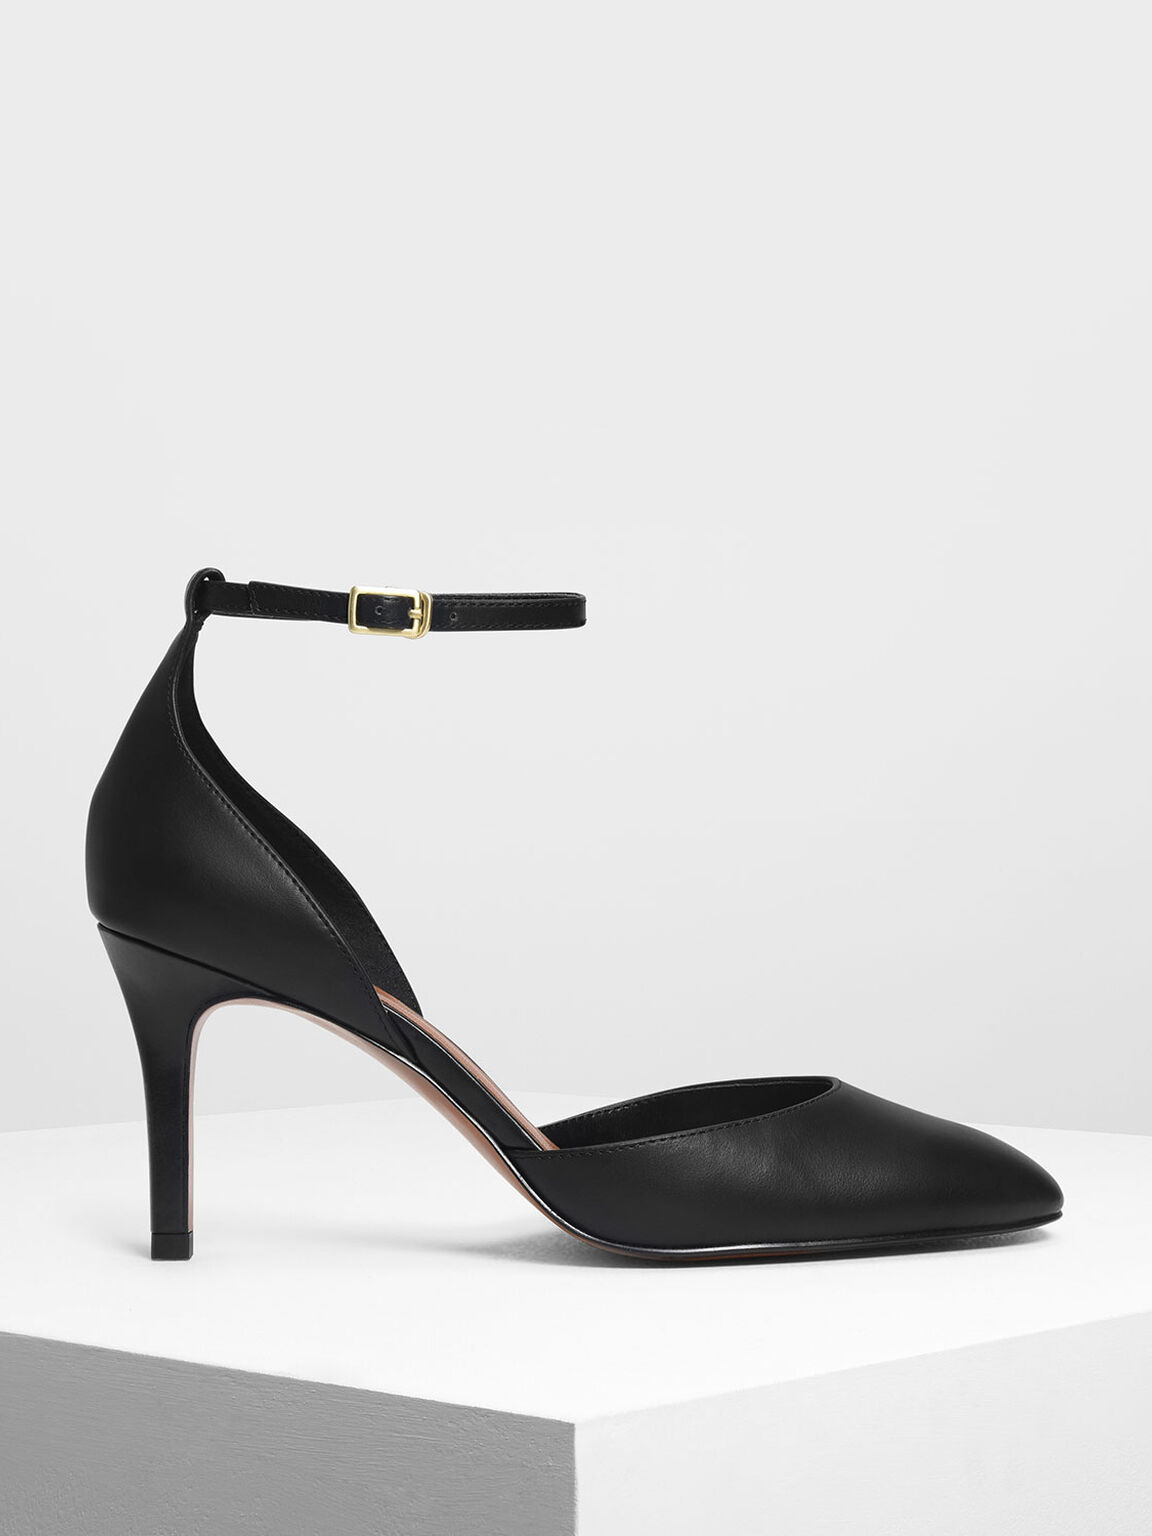 Ankle Strap Heels, Black, hi-res